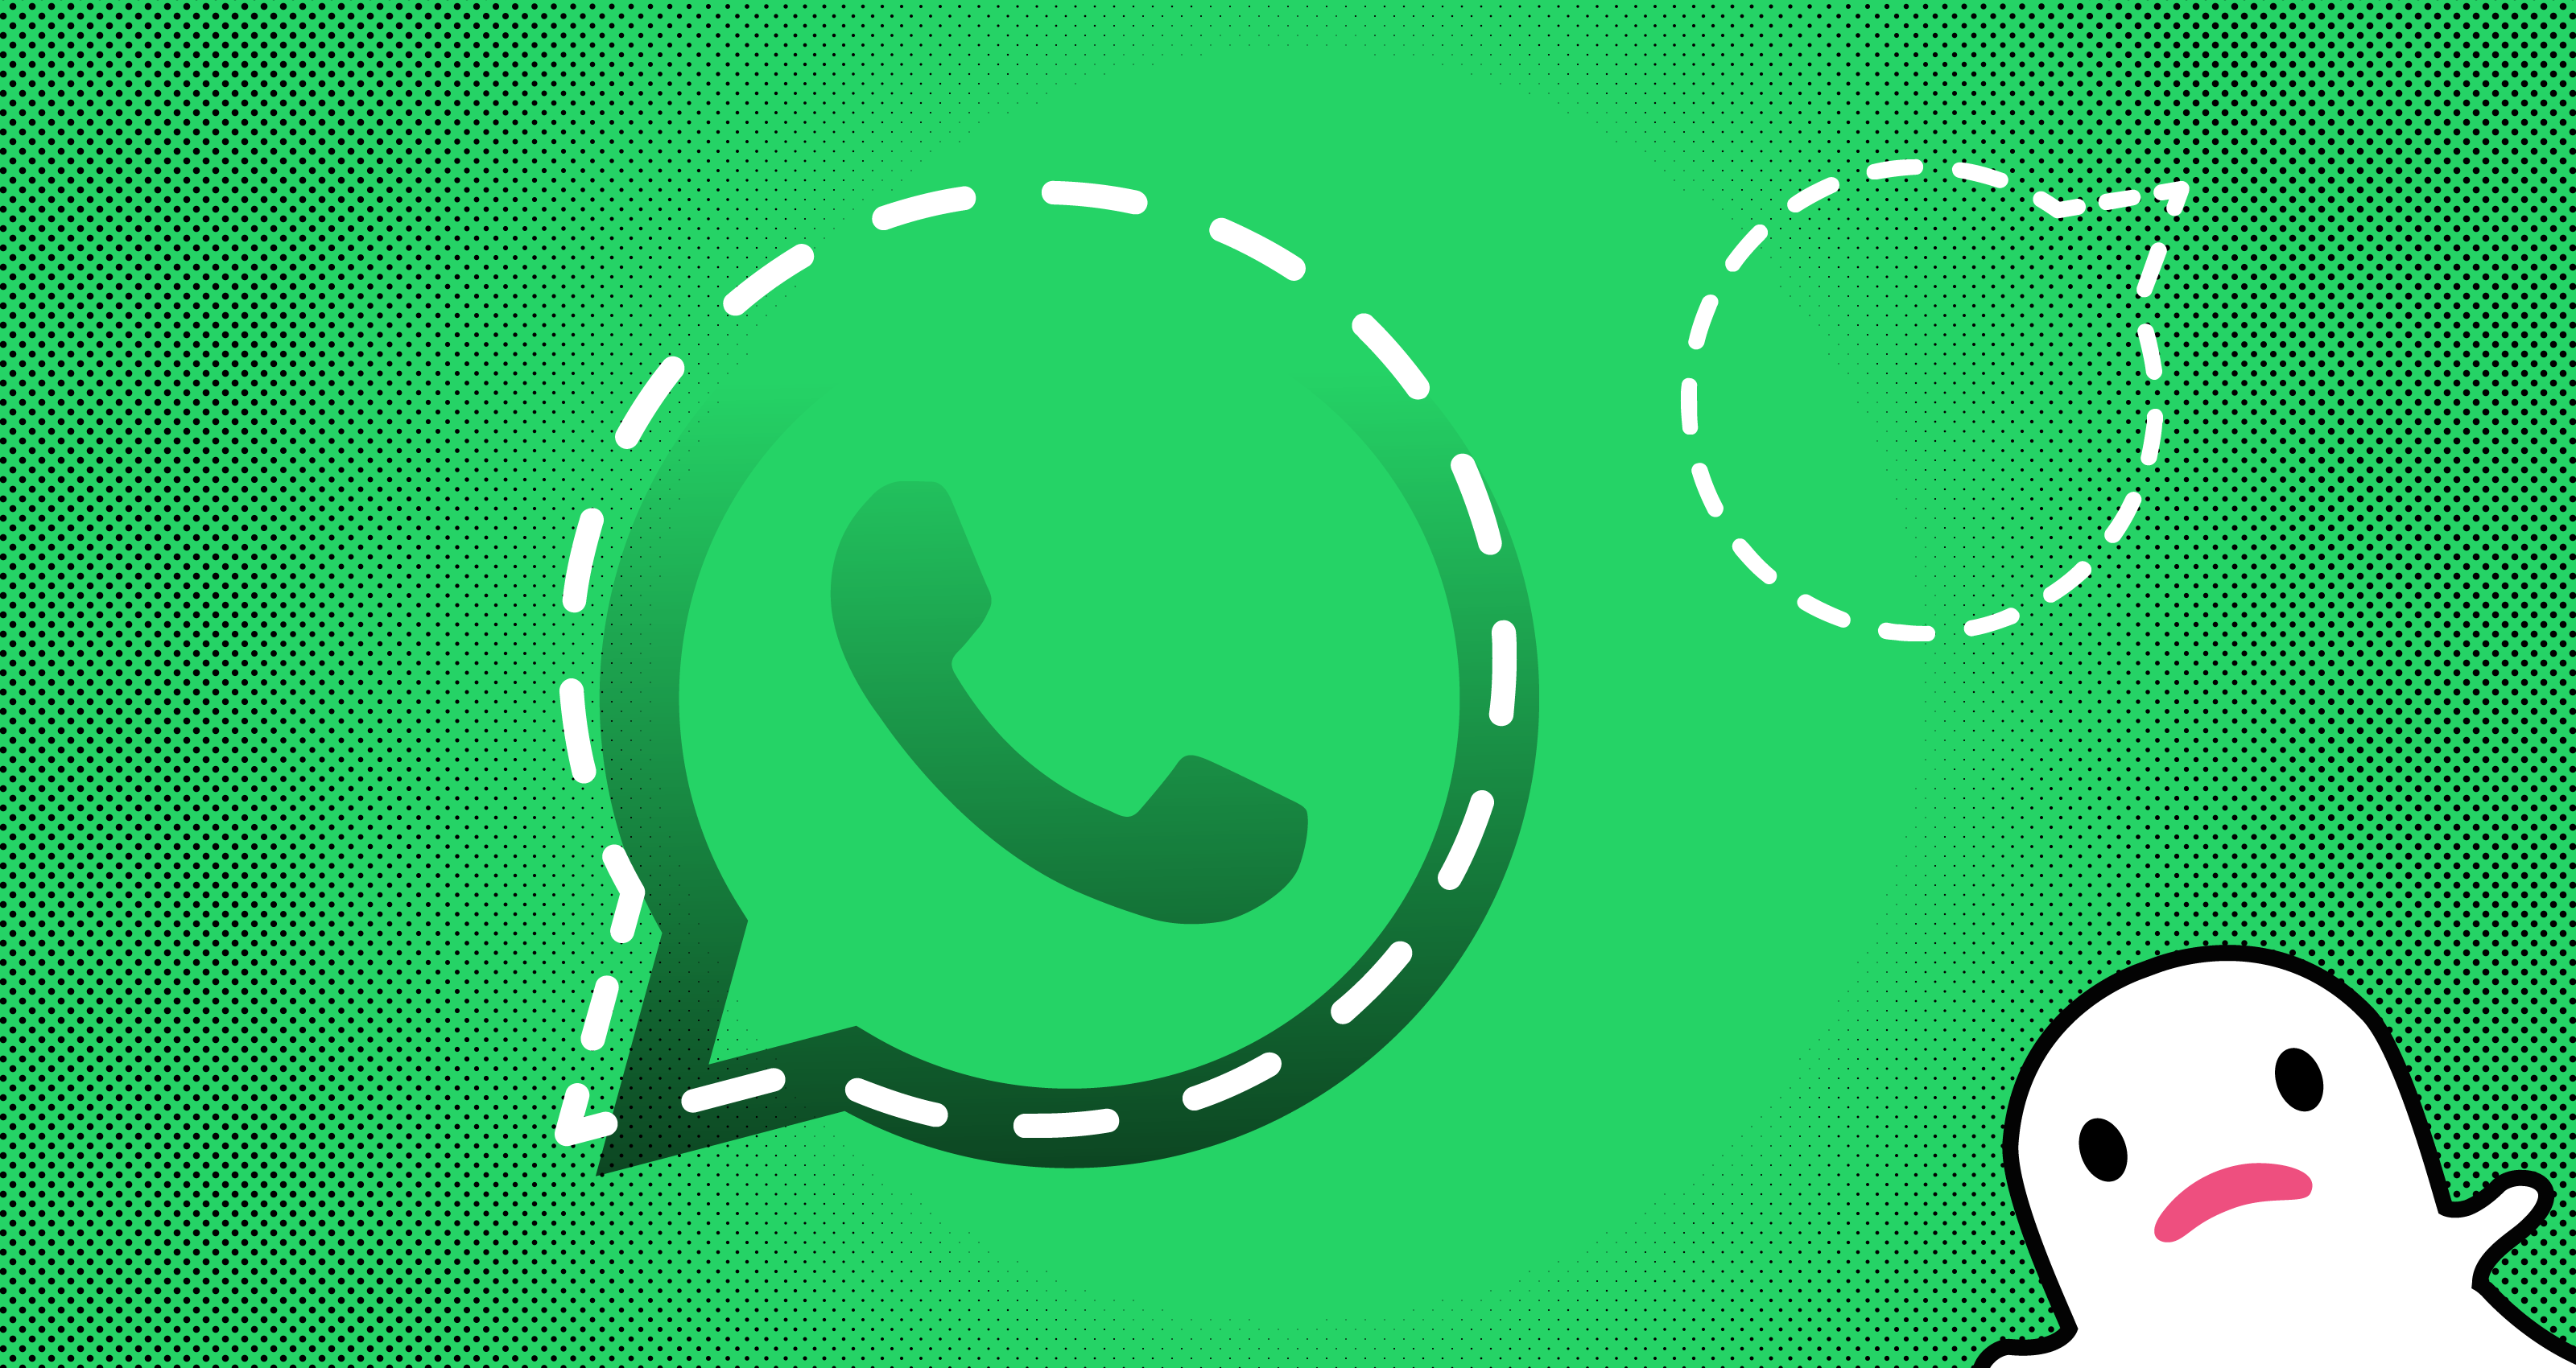 techcrunch.com - Josh Constine - WhatsApp could wreck Snapchat again by copying ephemeral messaging